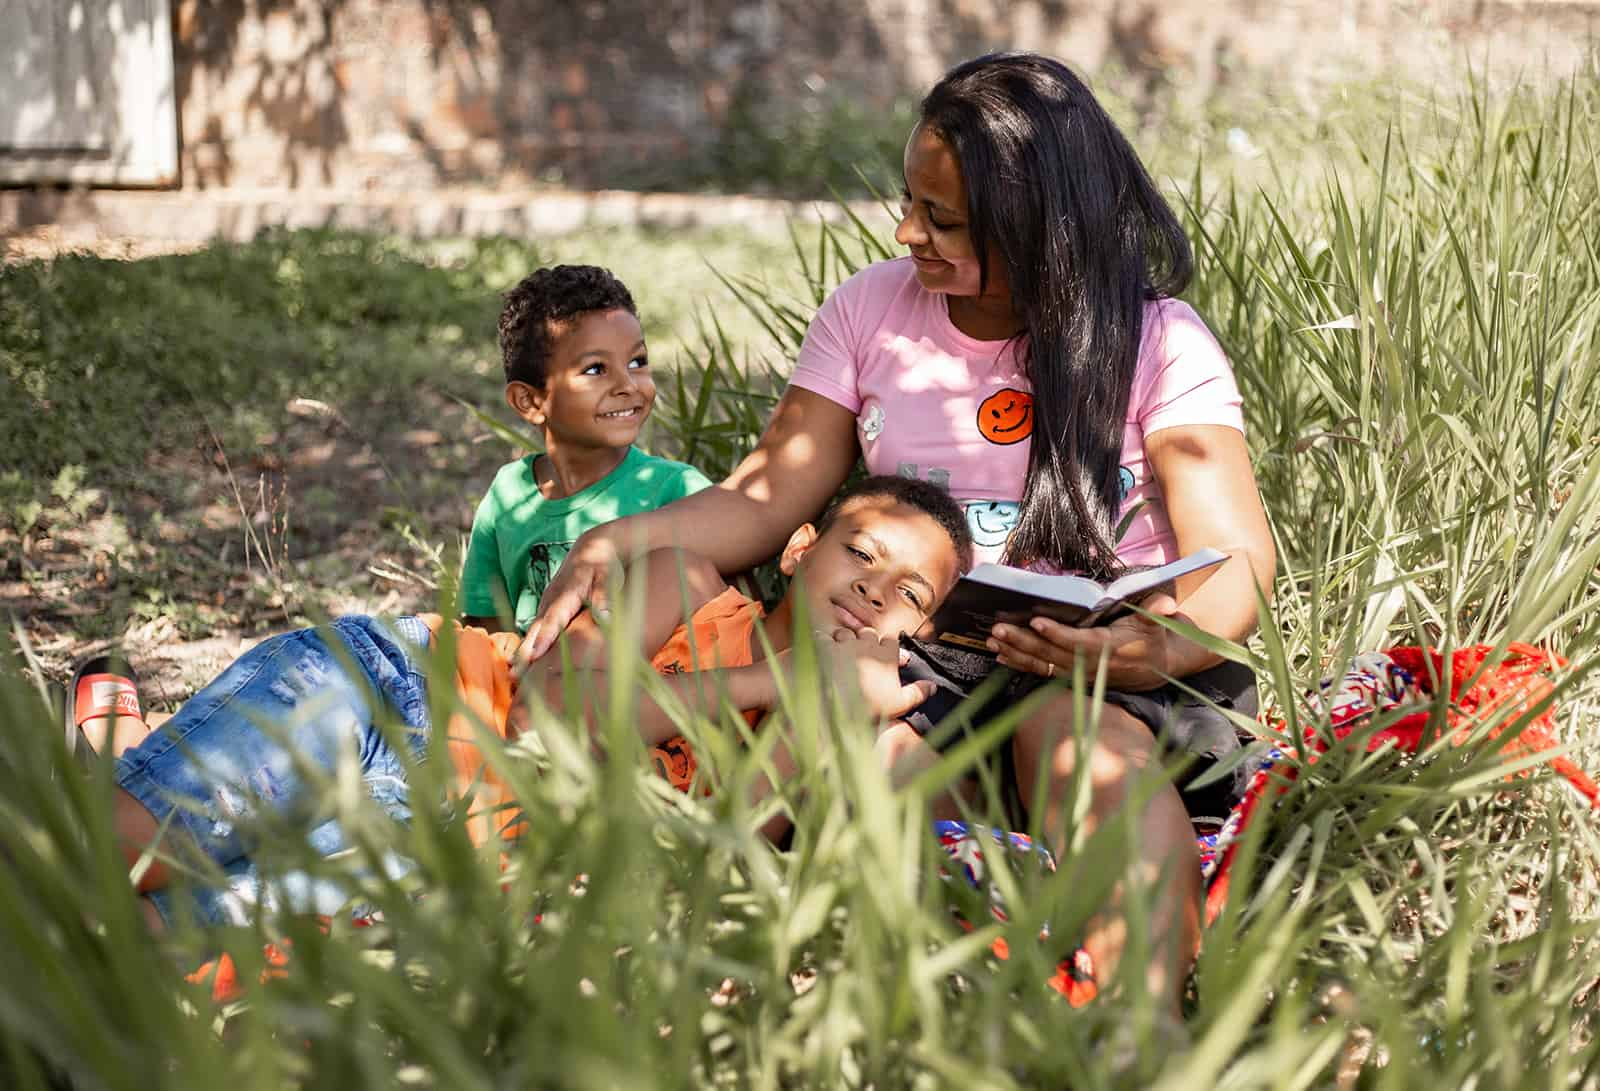 Mother and children reading in the grass